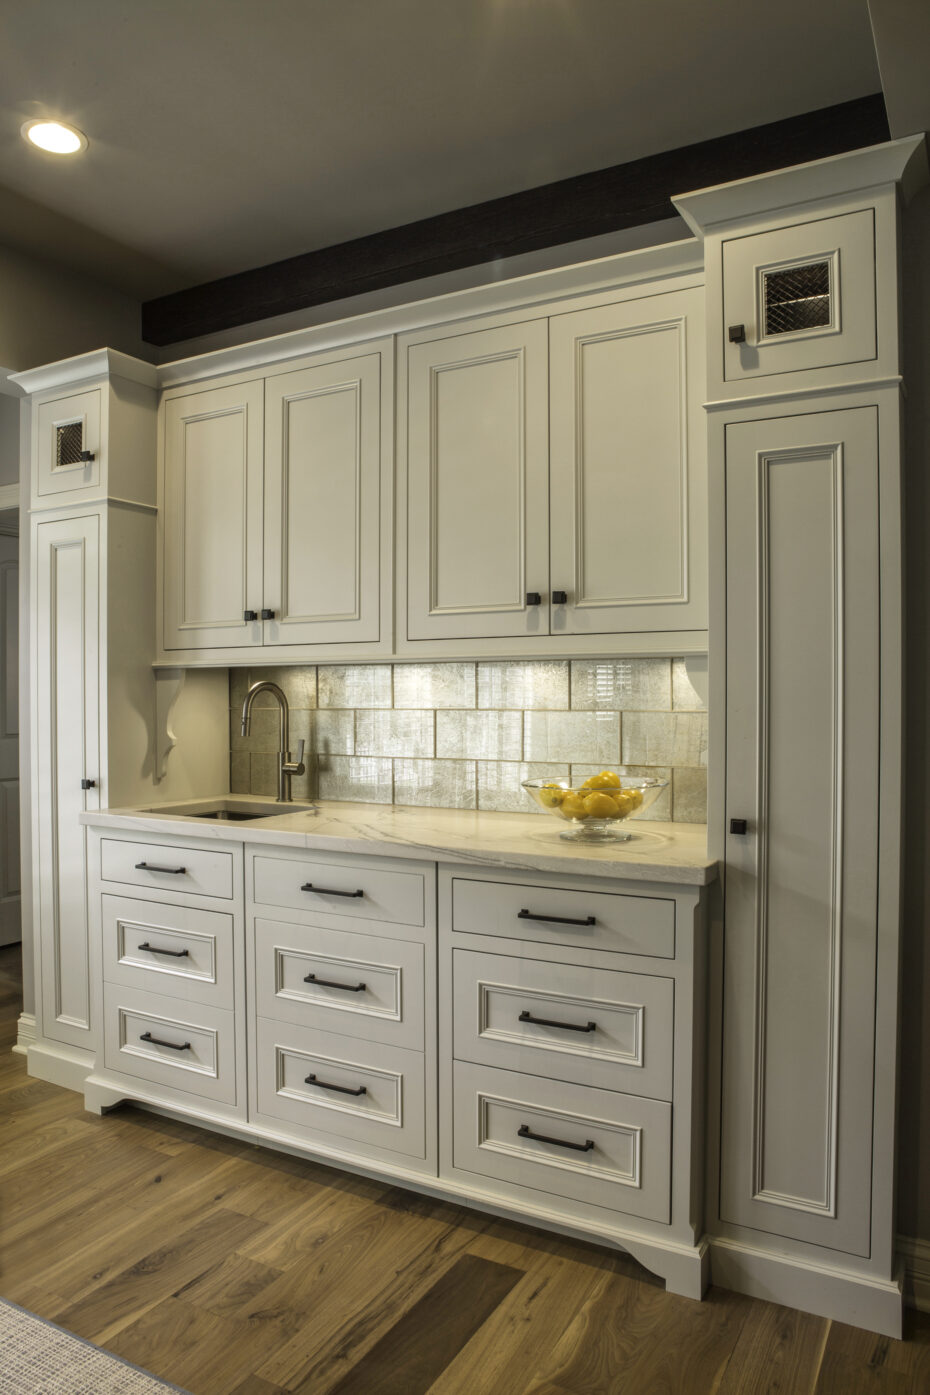 Butler's pantry with white cabinets and mirrored Ann Sacks glass tile backsplash